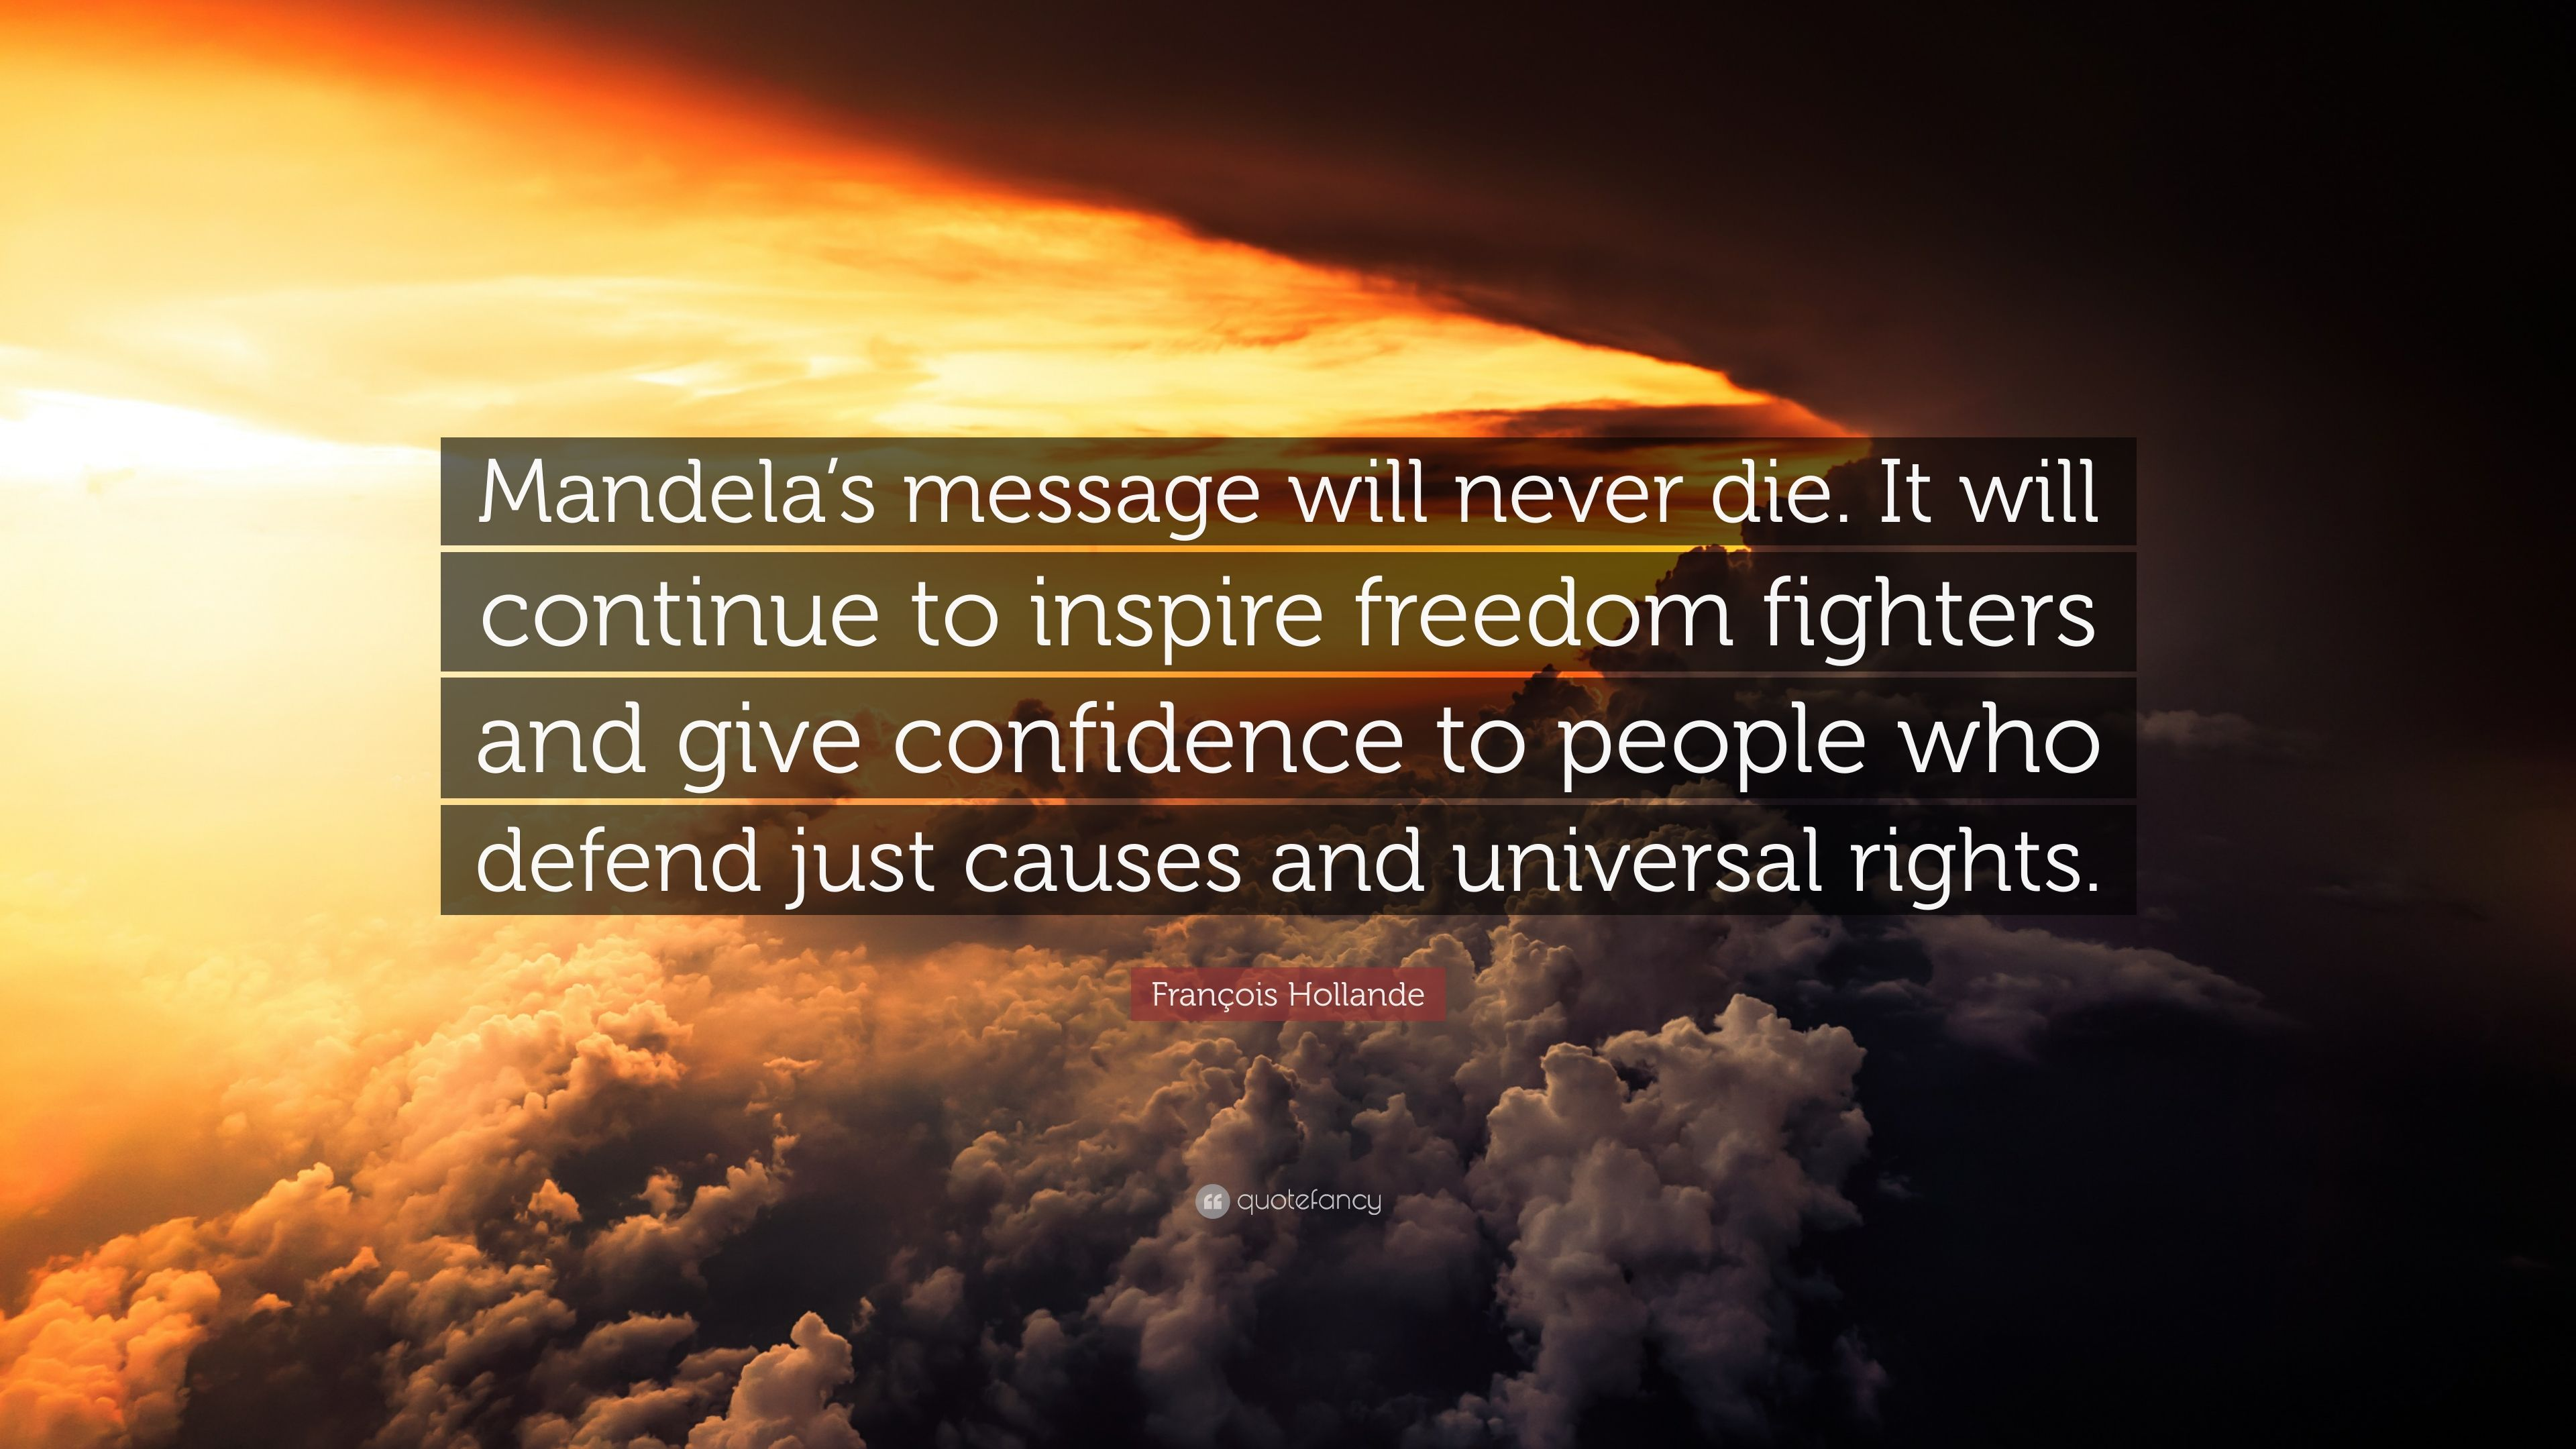 François Hollande Quote: U201cMandelau0027s Message Will Never Die. It Will  Continue To Inspire